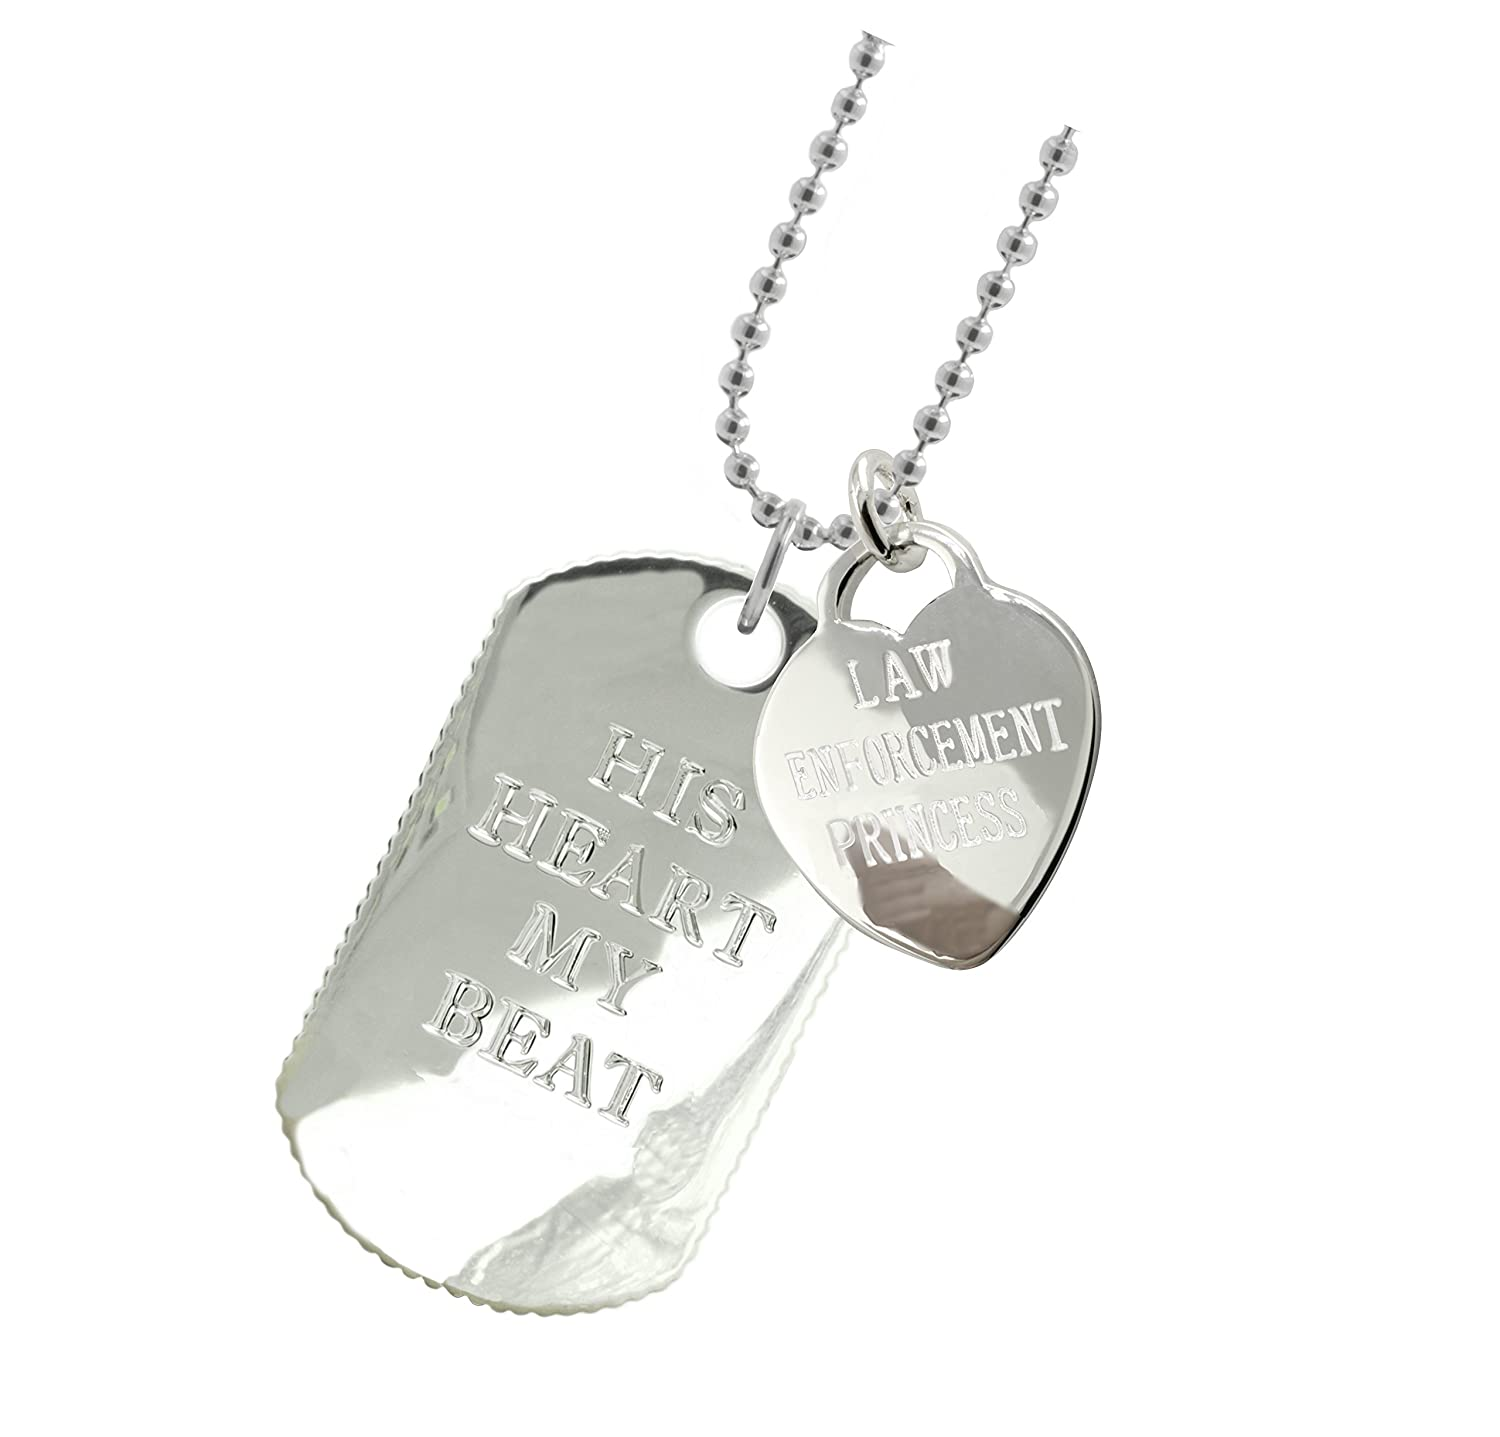 New York 925 & Co. Plated Police Girlfriend Dog Tag DT